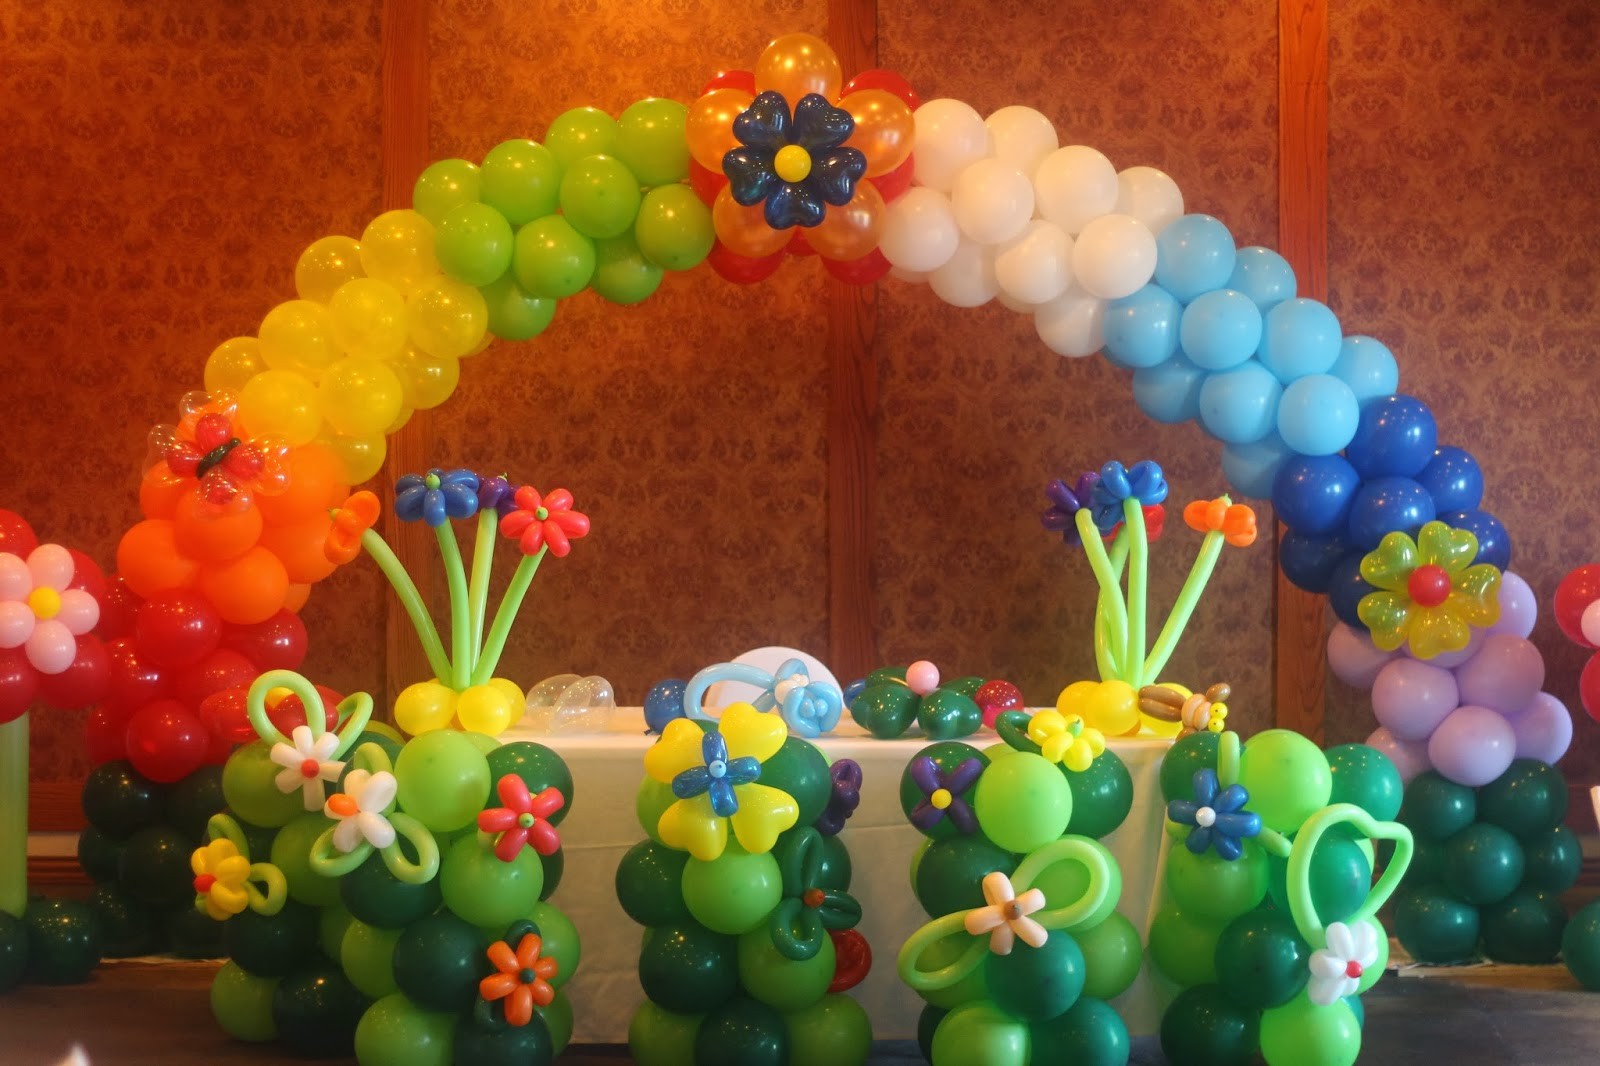 Balloon arch balloon ideas balloon decorations outdoor decorations - Santo Diamond Balloon Design Jungle Balloon Arch